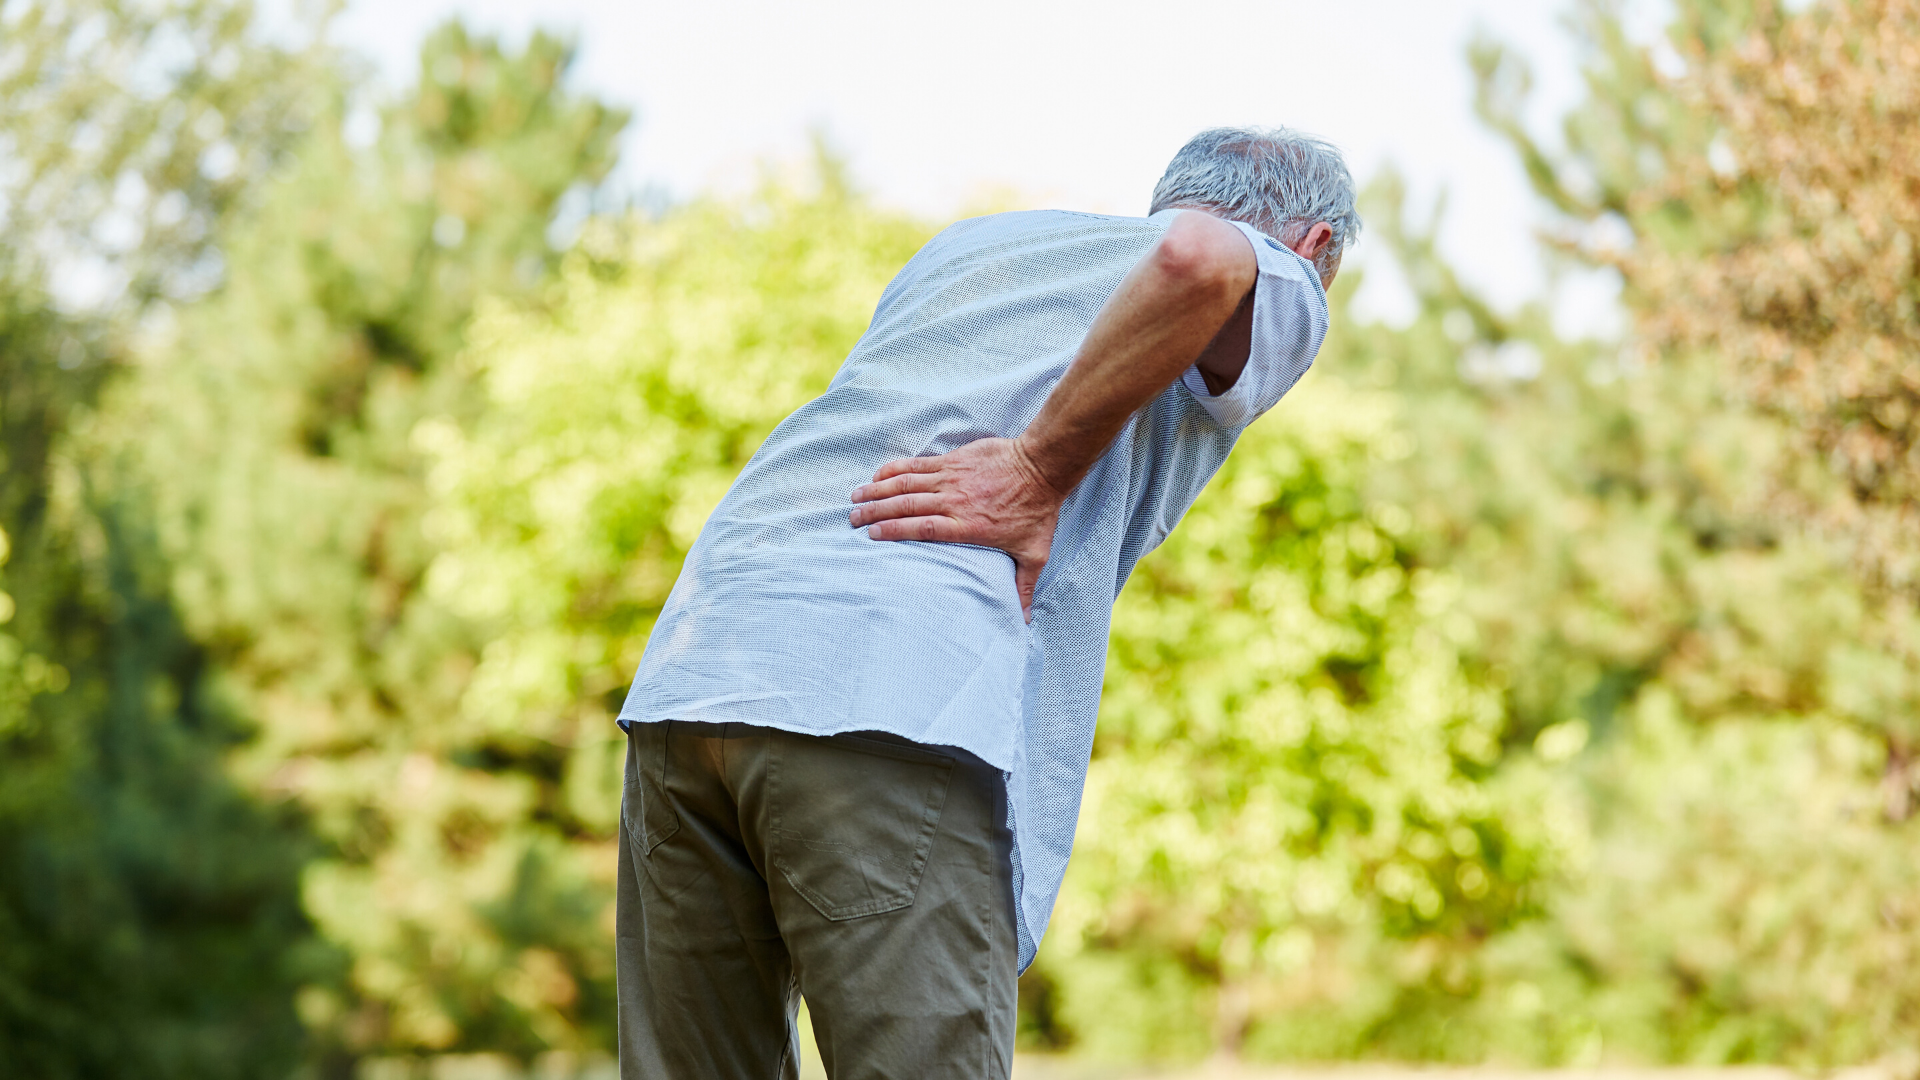 Are You Plagued By Chronic Pain?